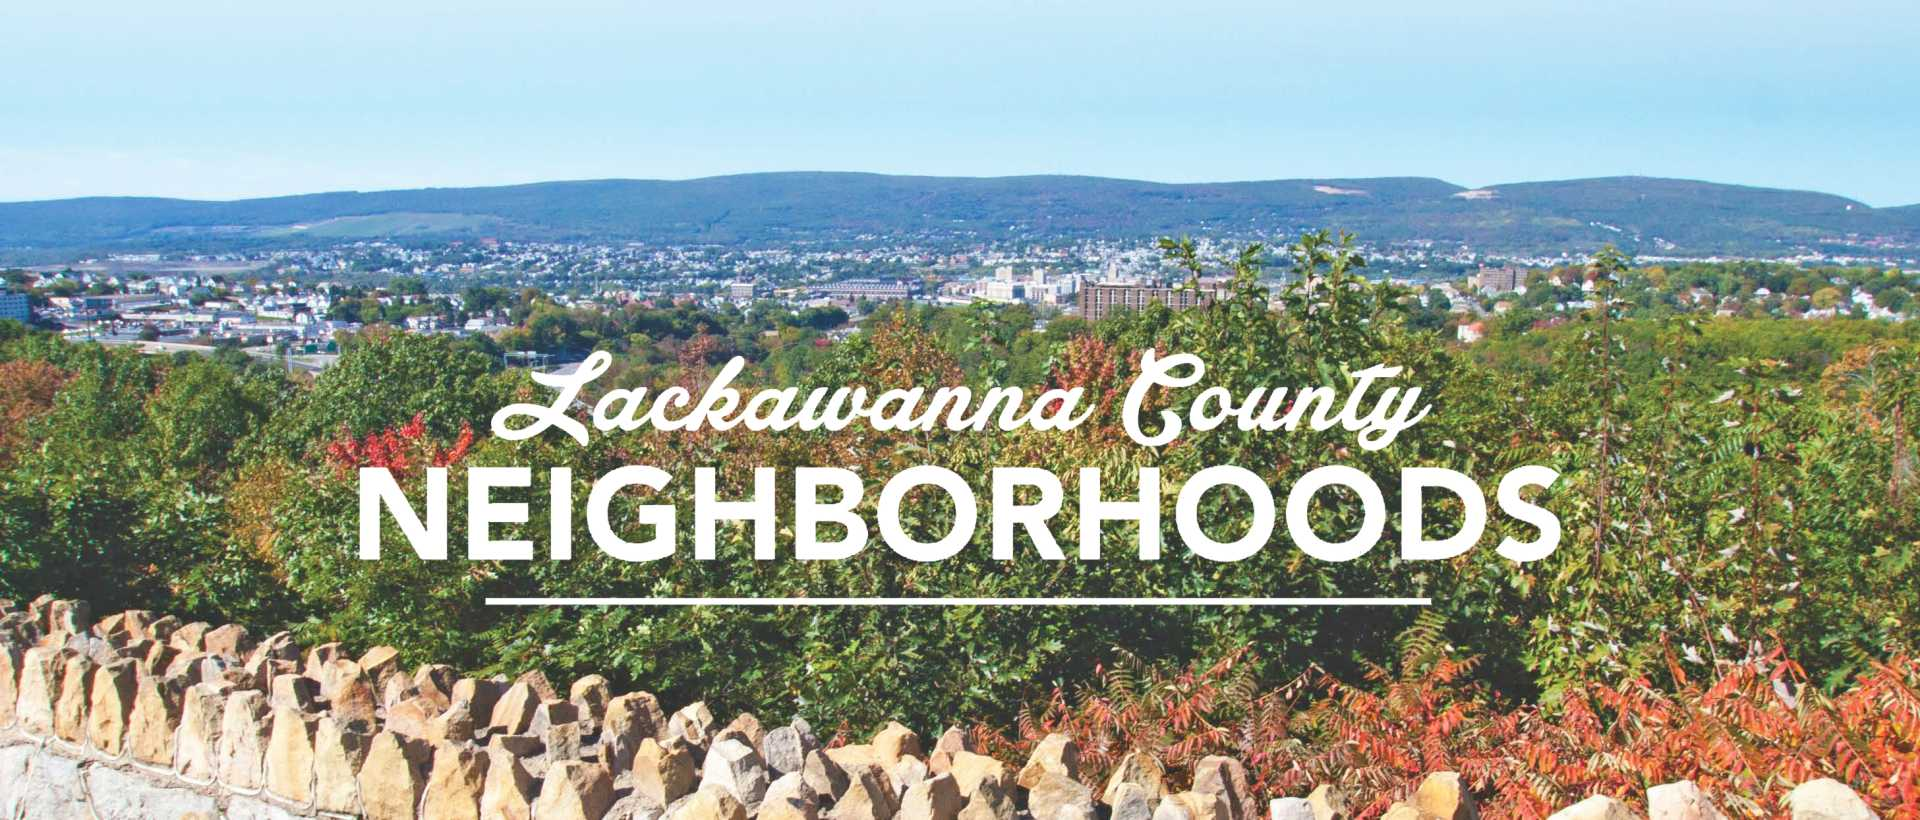 "A view of Scranton, PA, with the title ""Lackawanna County Neighborhoods""."